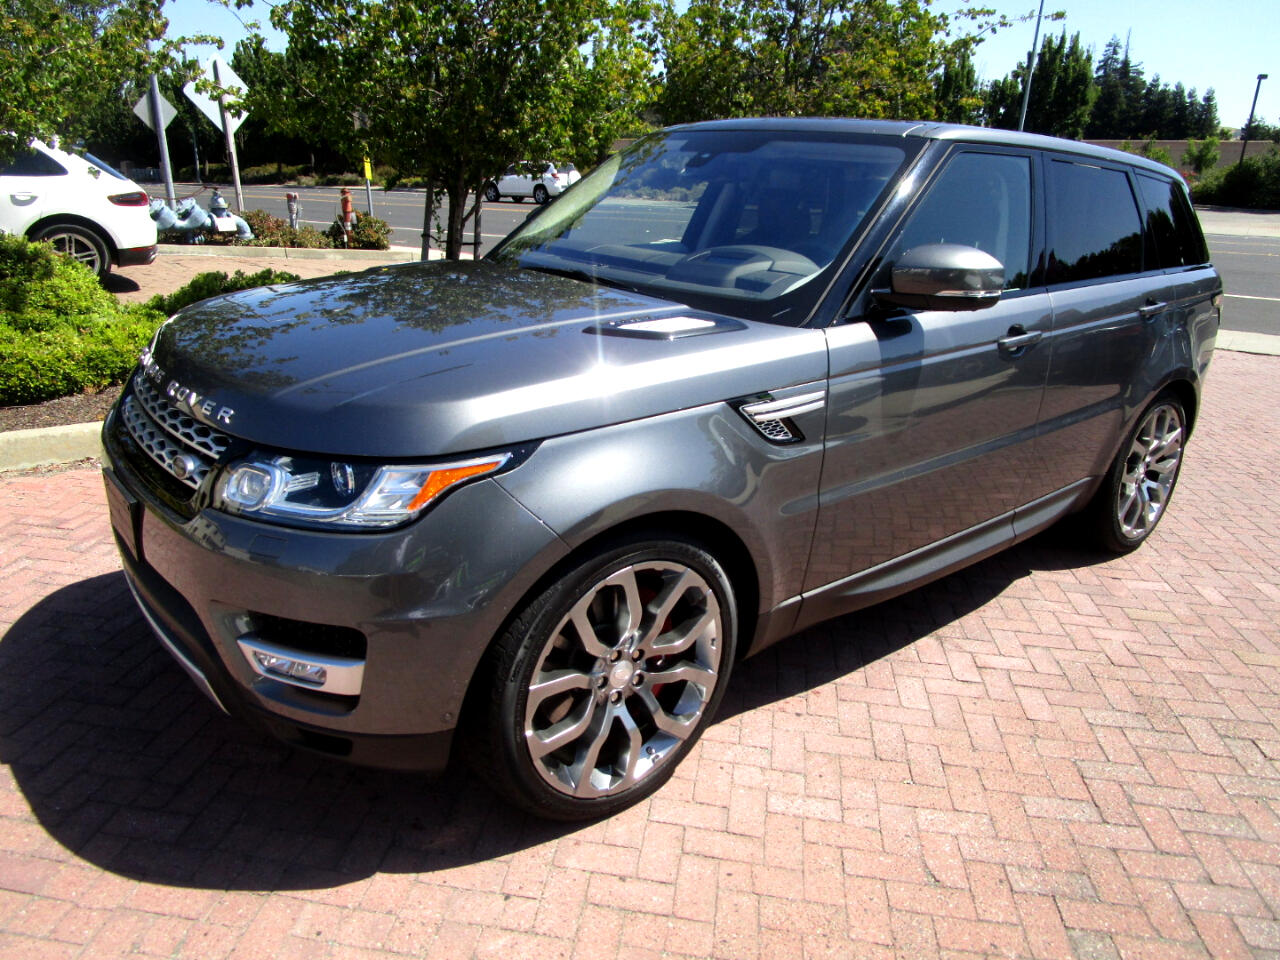 2016 Land Rover Range Rover Sport SUPERCHARGED 5.0 V8 510HP*HEAT/AC SEATS*PANO*BLND